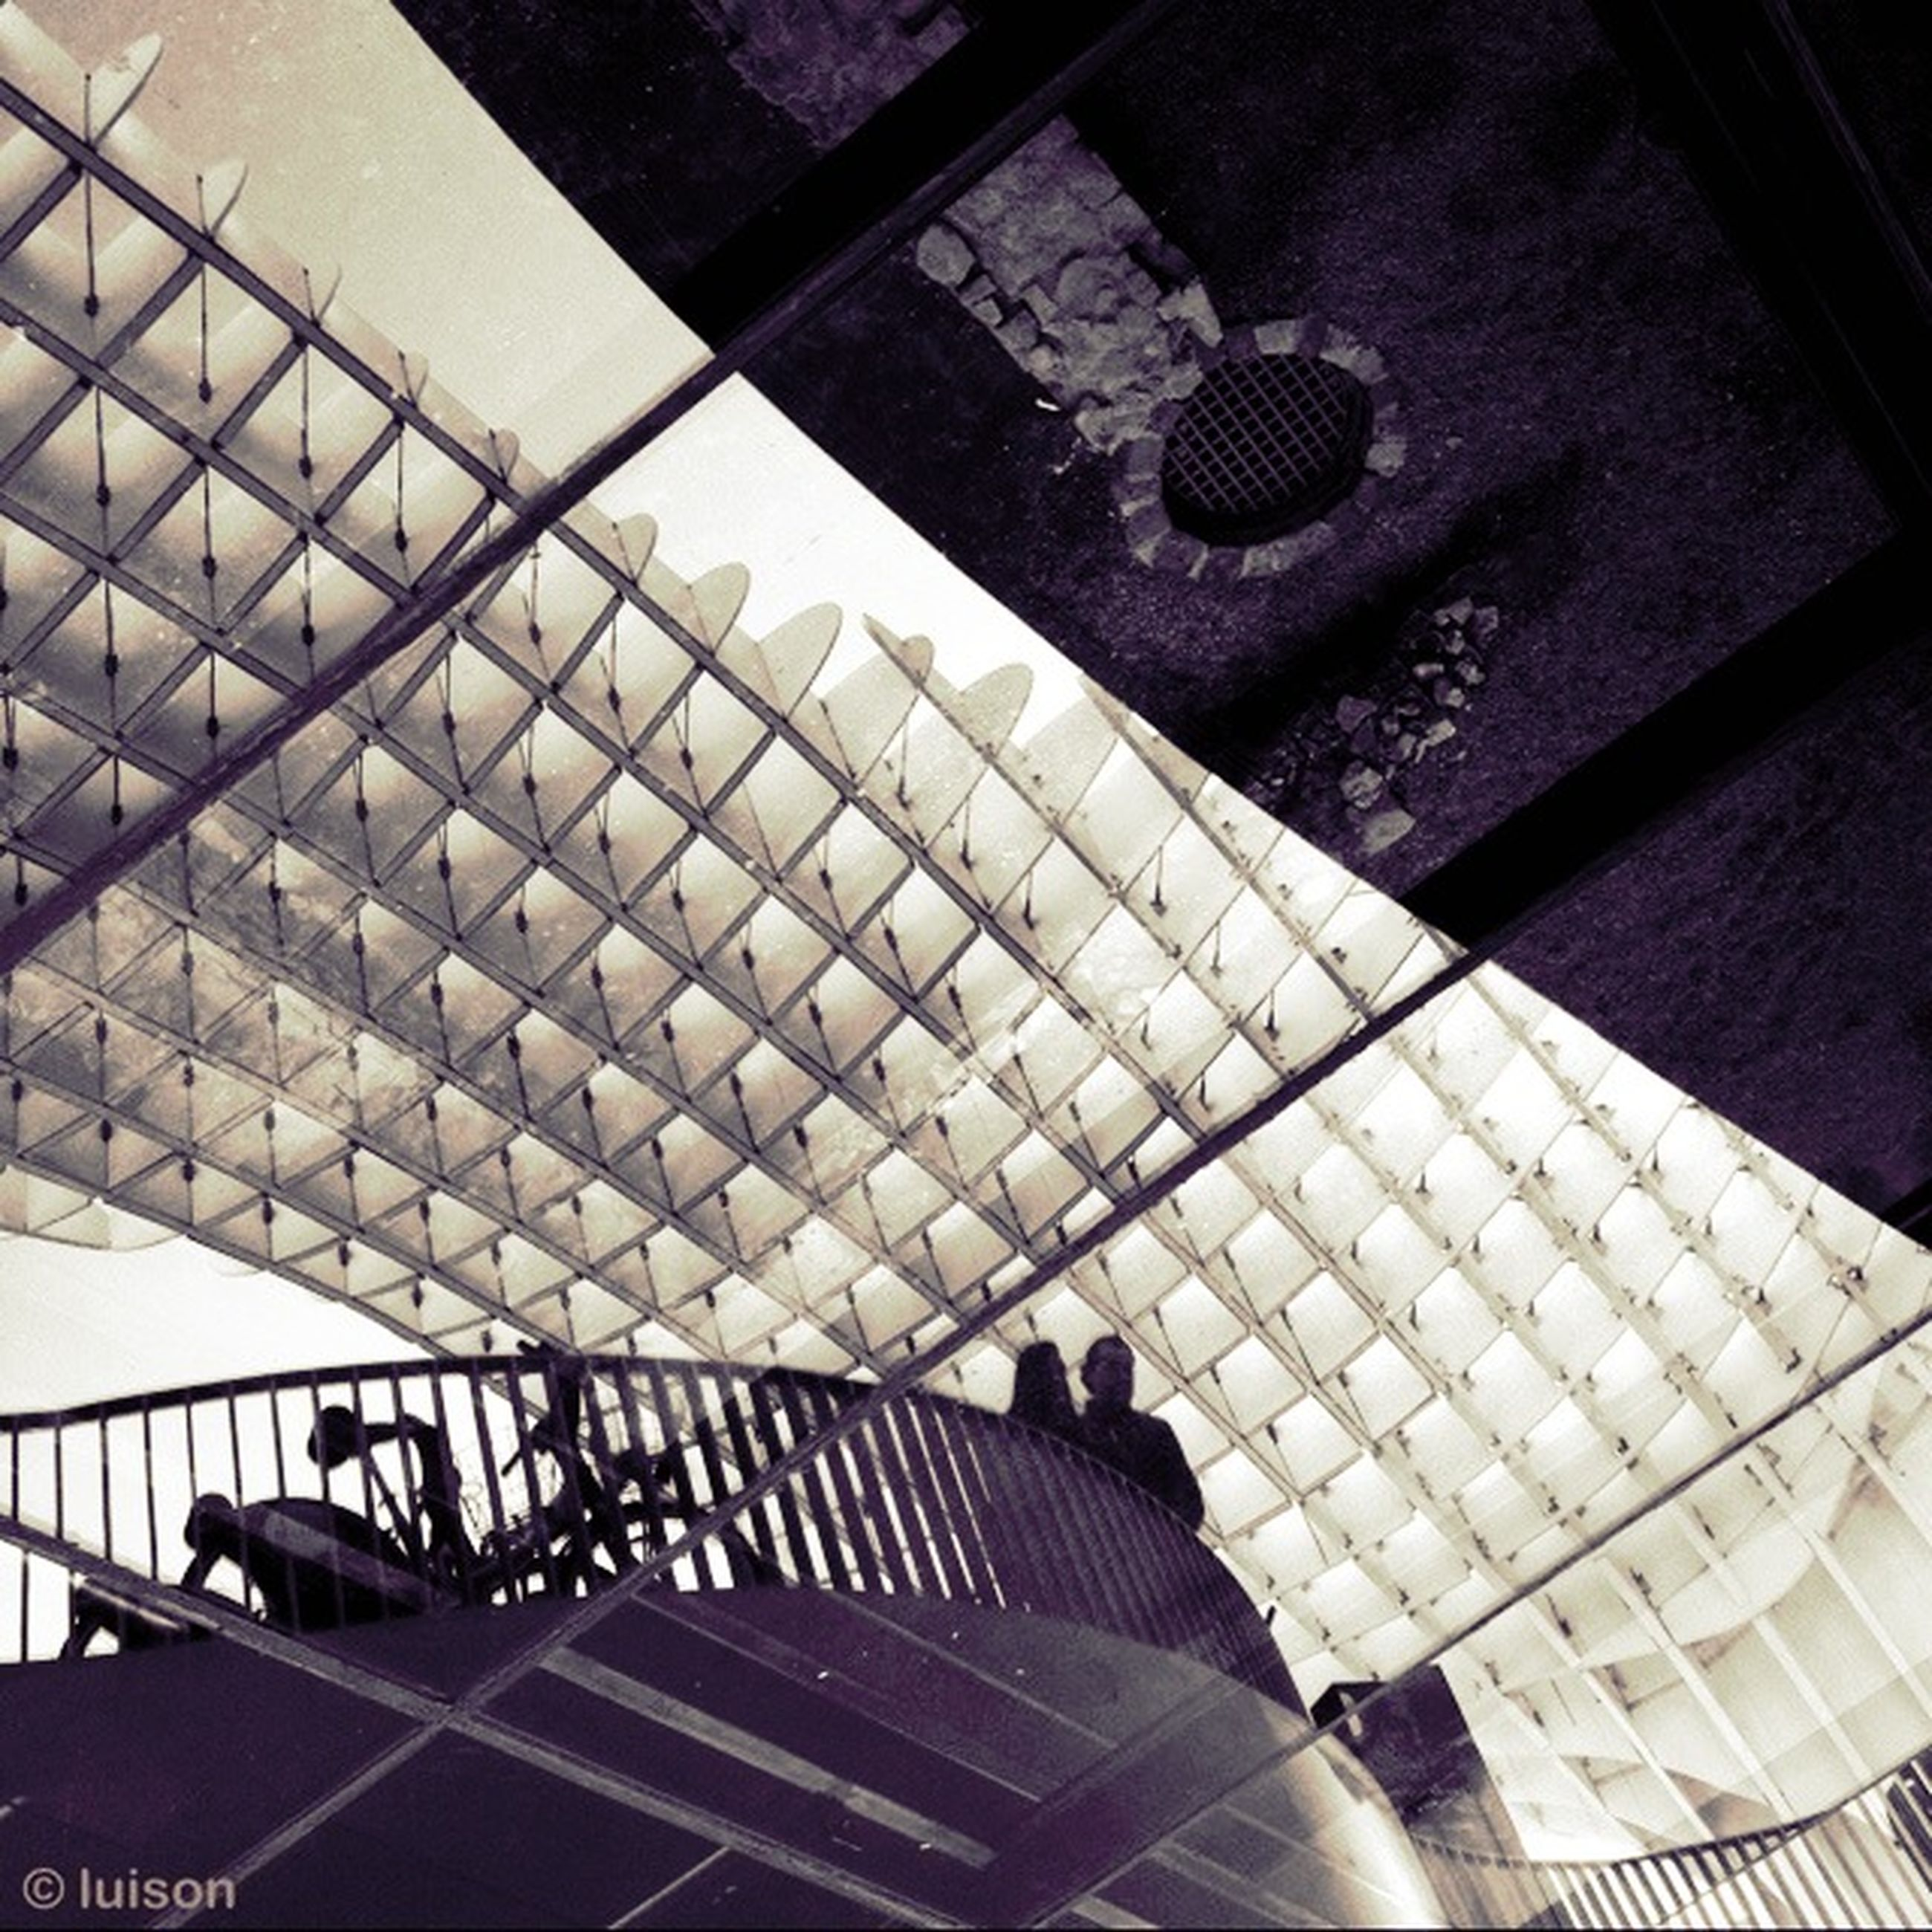 indoors, high angle view, architecture, built structure, shadow, wall - building feature, window, sunlight, tiled floor, glass - material, metal, no people, railing, pattern, day, reflection, flooring, steps, modern, tile